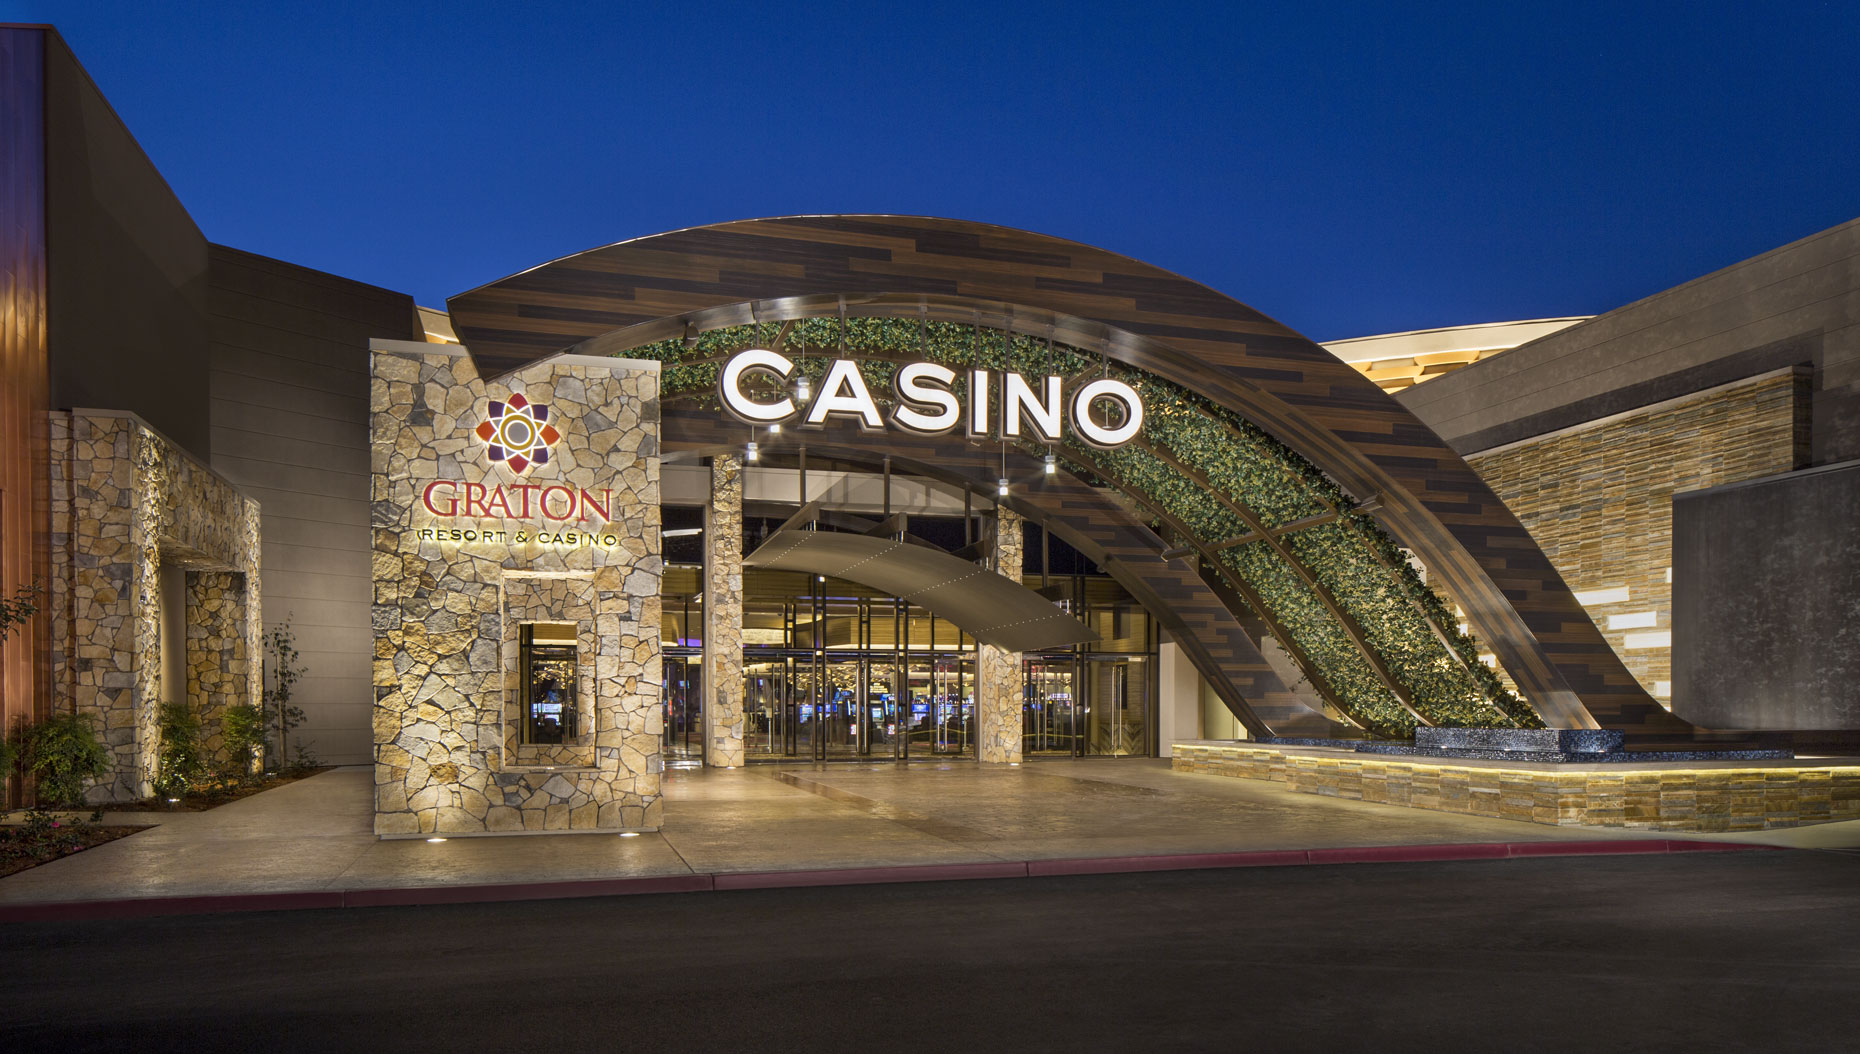 Gaming Photography Graton Casino